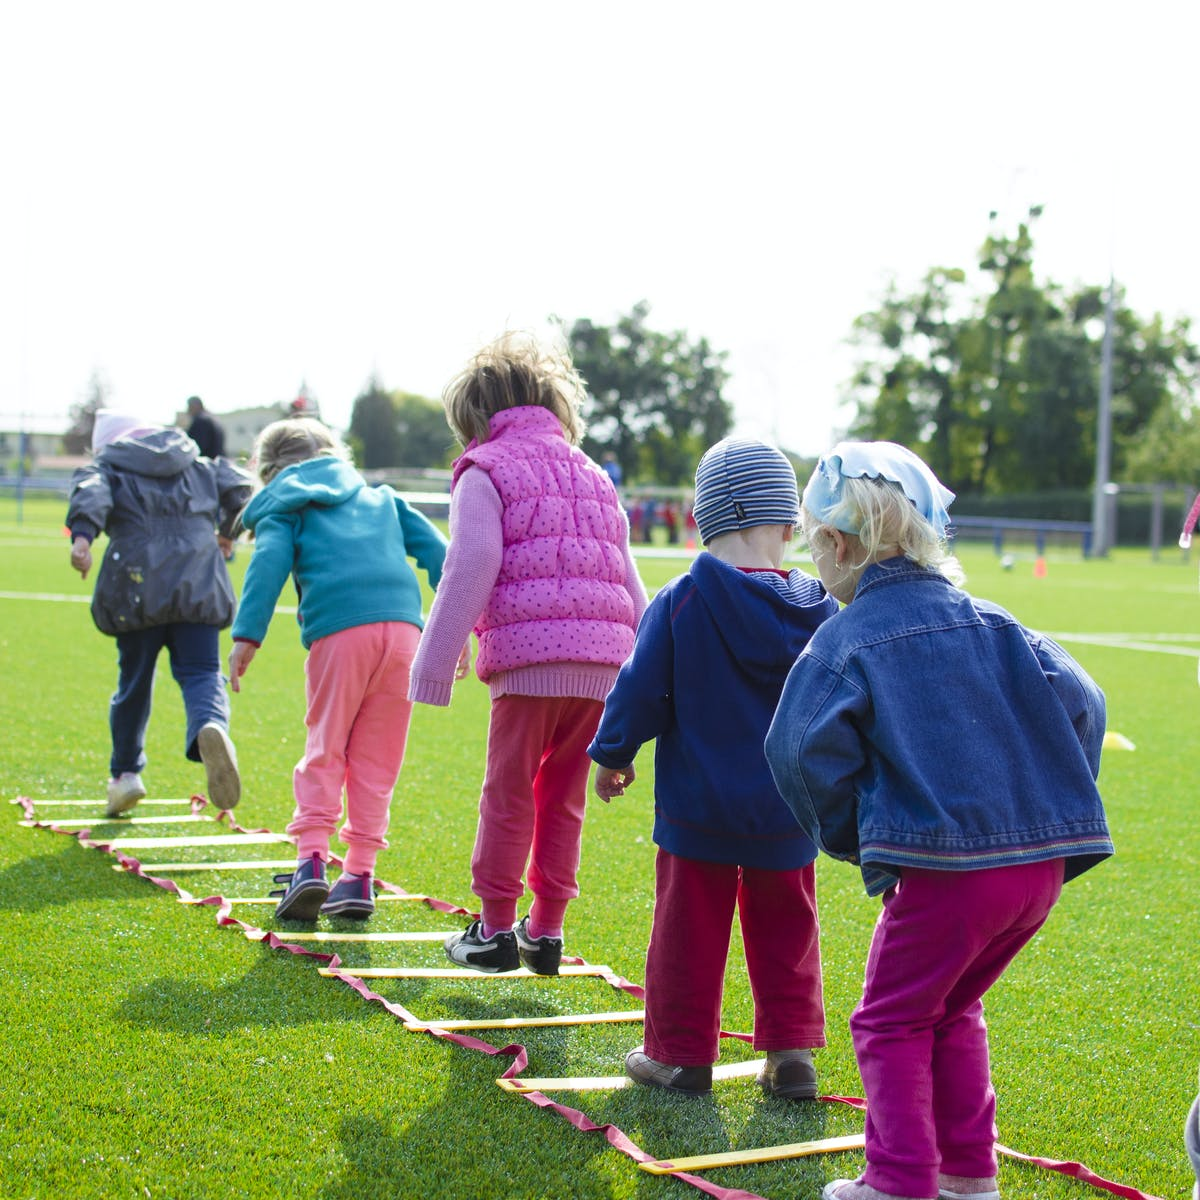 Overweight Kids Tackling Childhood Obesity Is About More Than Just Diet And Exercise